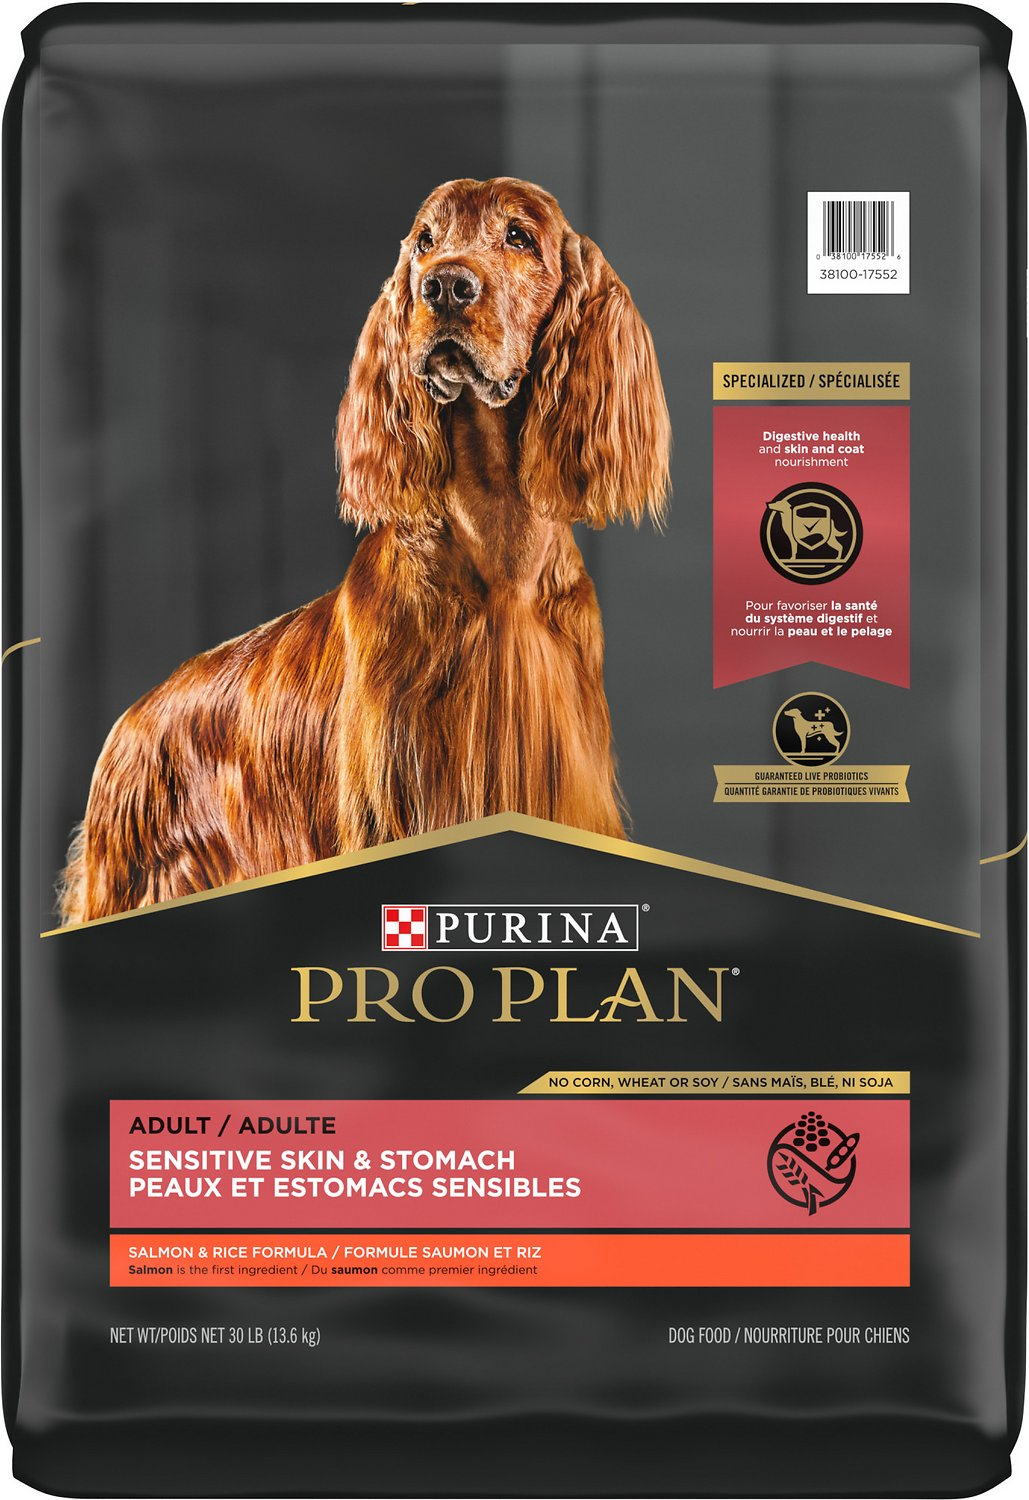 Purina Pro Plan Sensitive Skin & Stomach Adult